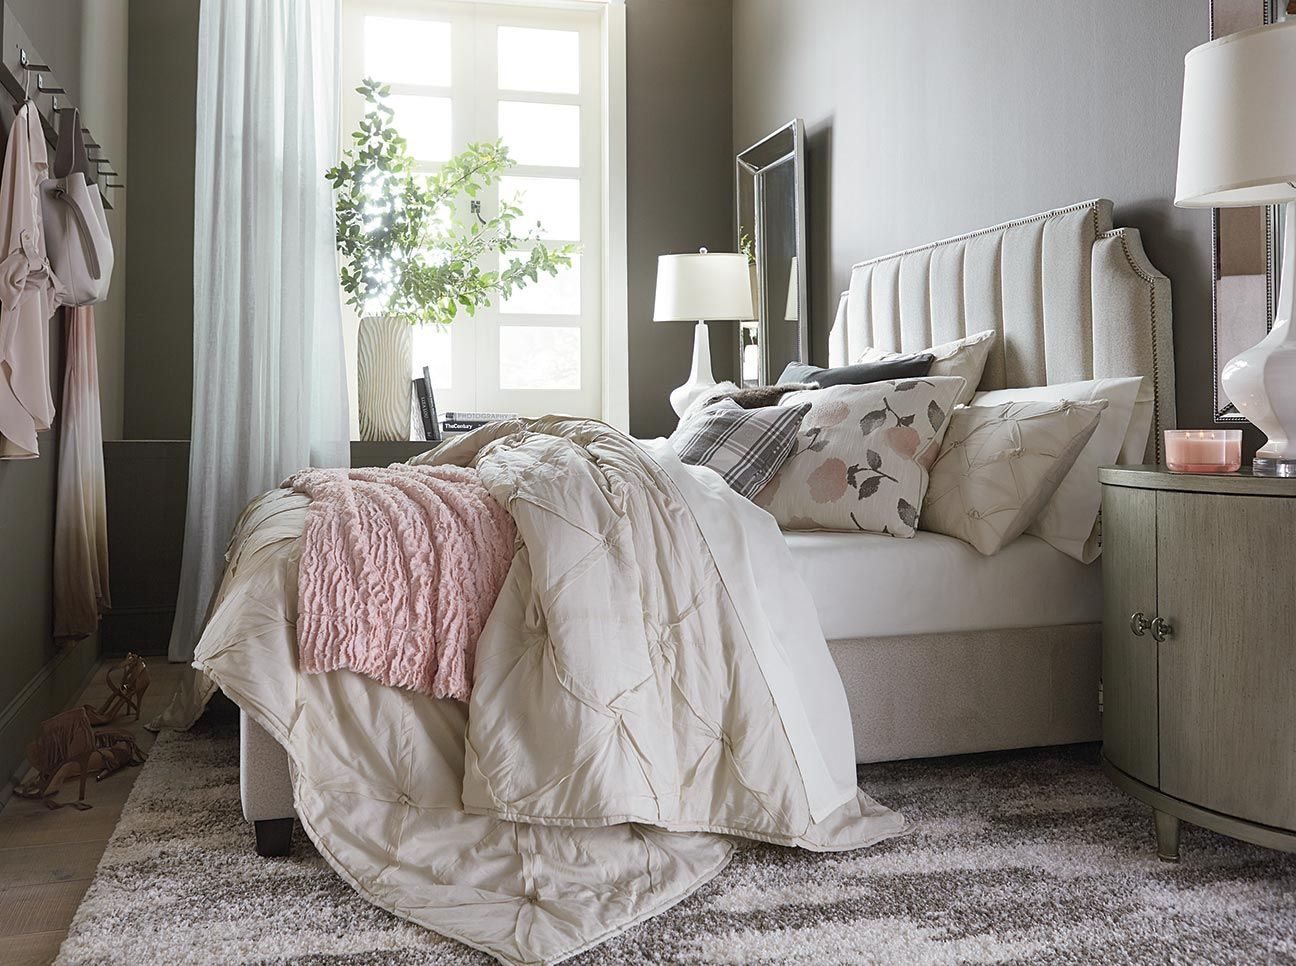 Area Rug Placement and Rug Sizes Under Queen Bed